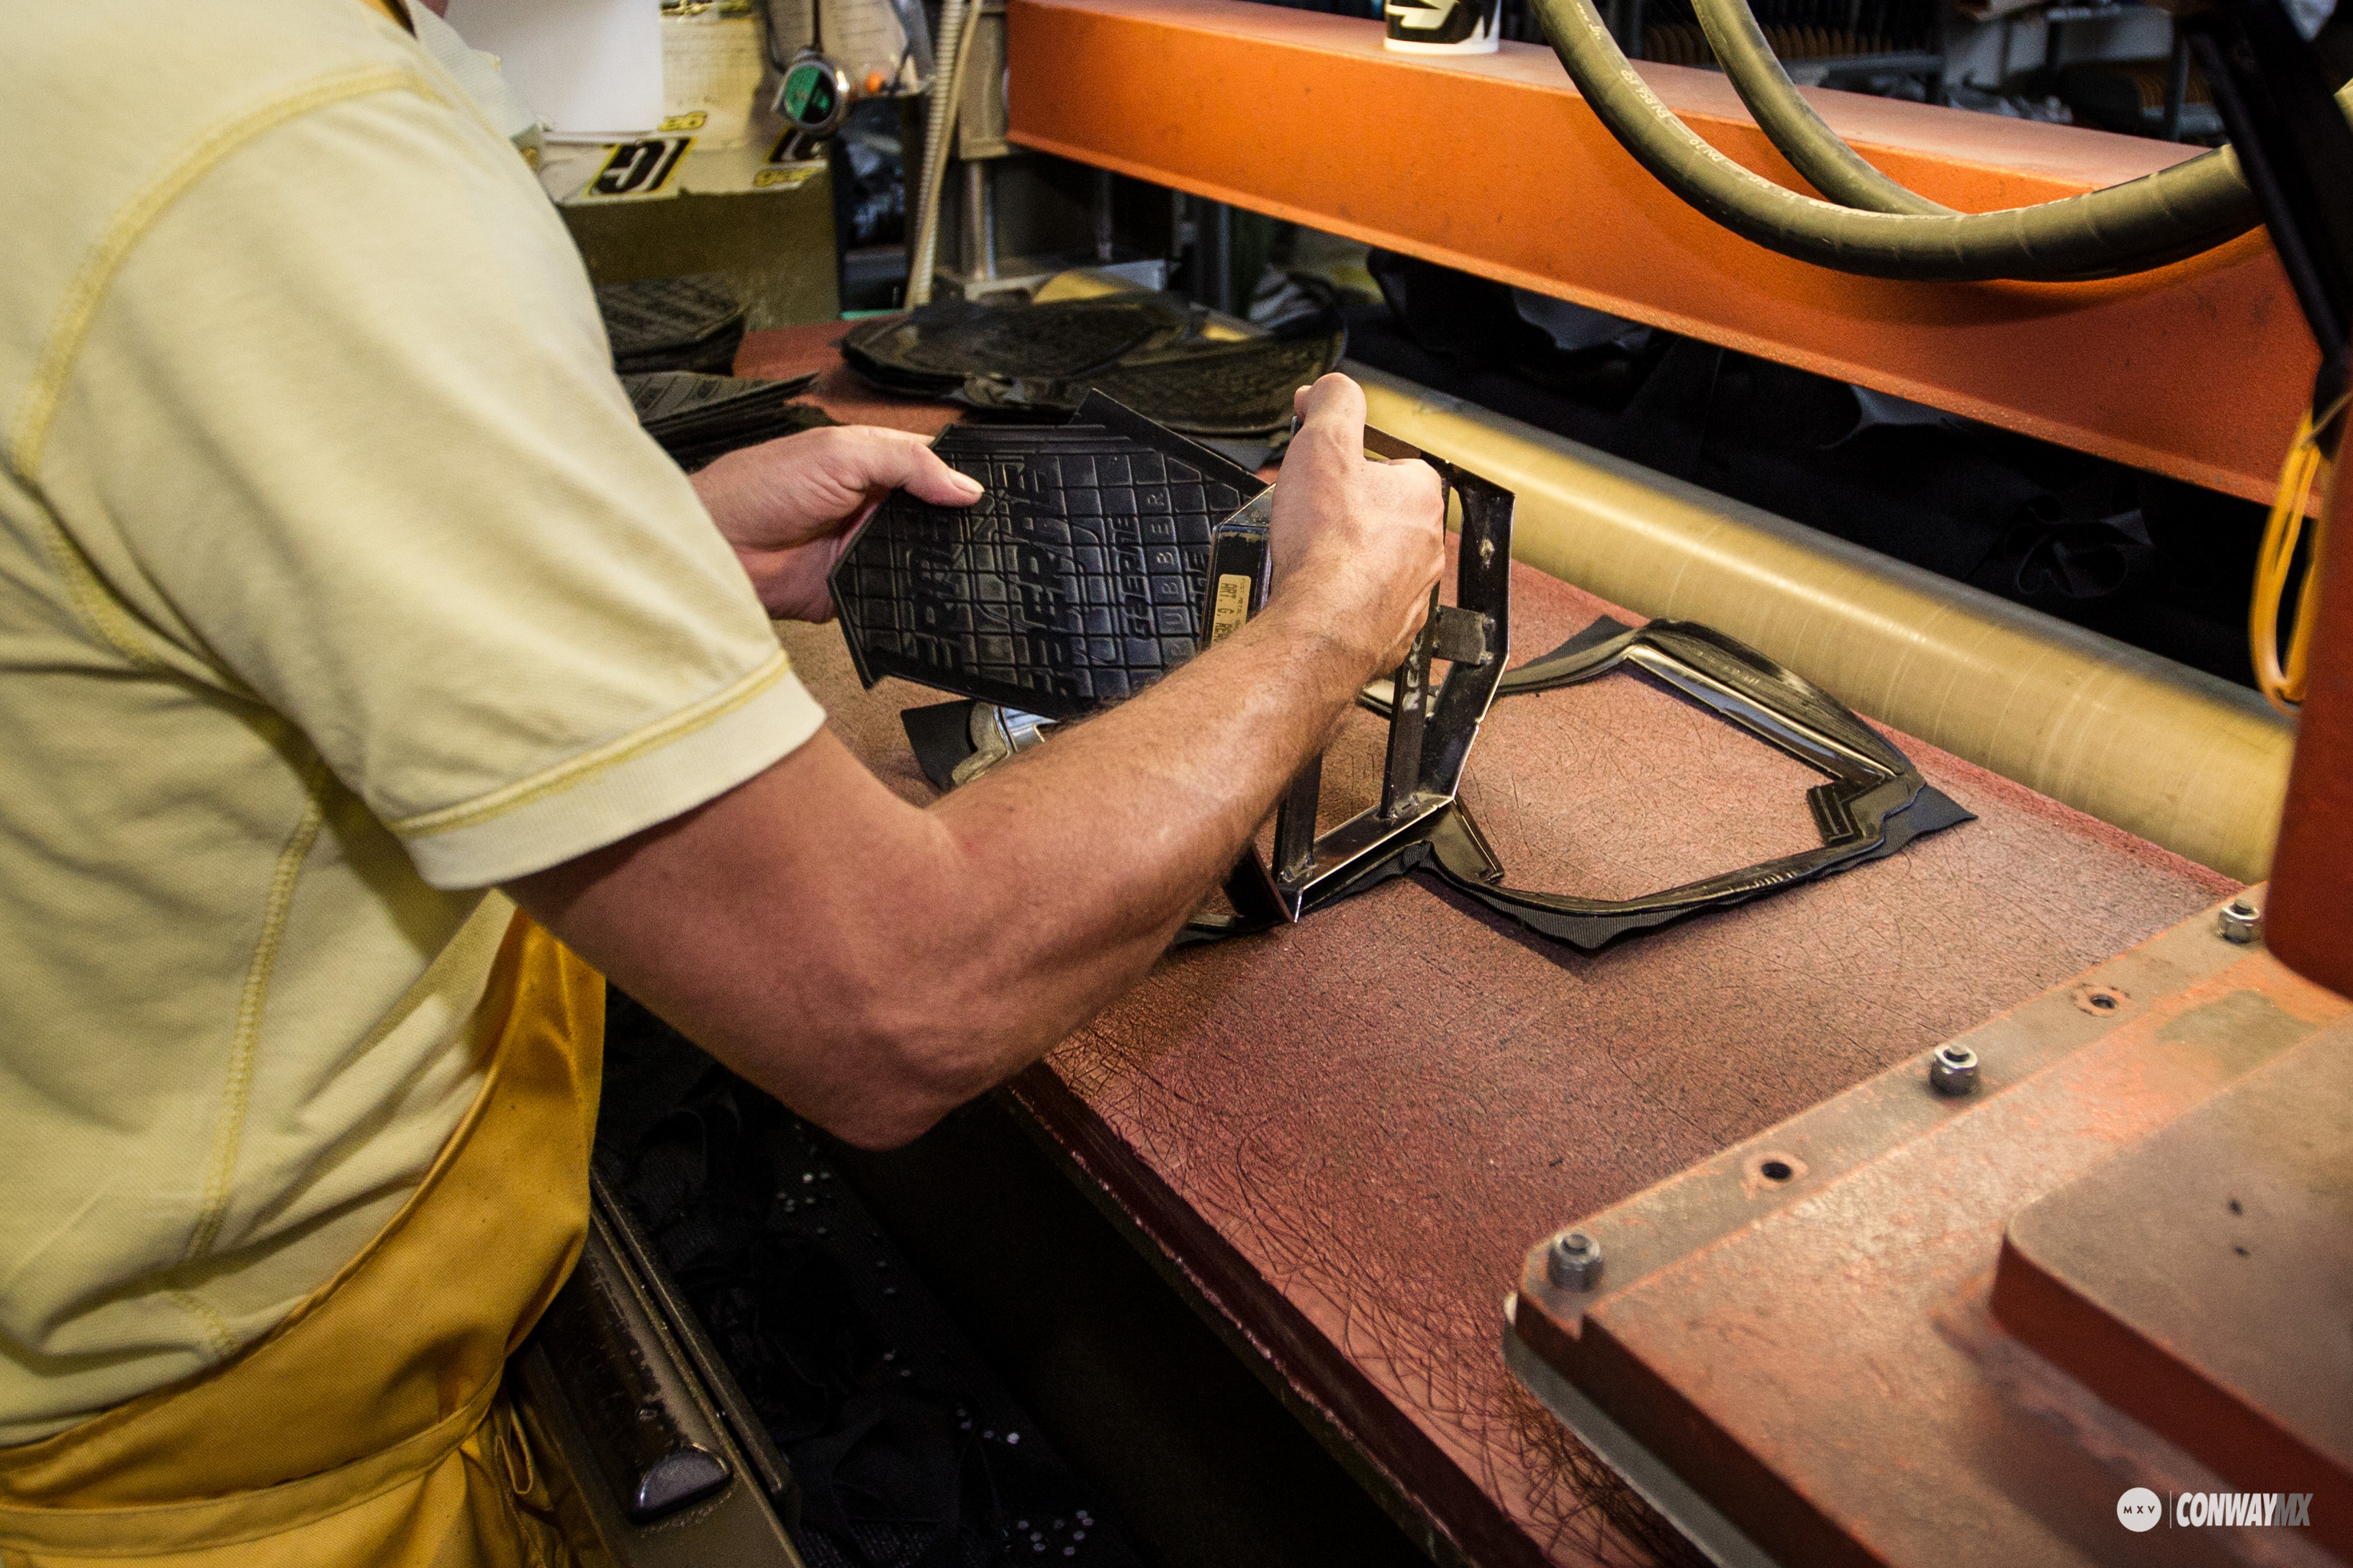 The process begins with the cutting of each panel. The leather is first printed and then stamped, using a traditional die cutting technique used in the shoe industry since the mid-19th century. Here you see the branded inside leg panel of the SG-12 boot.